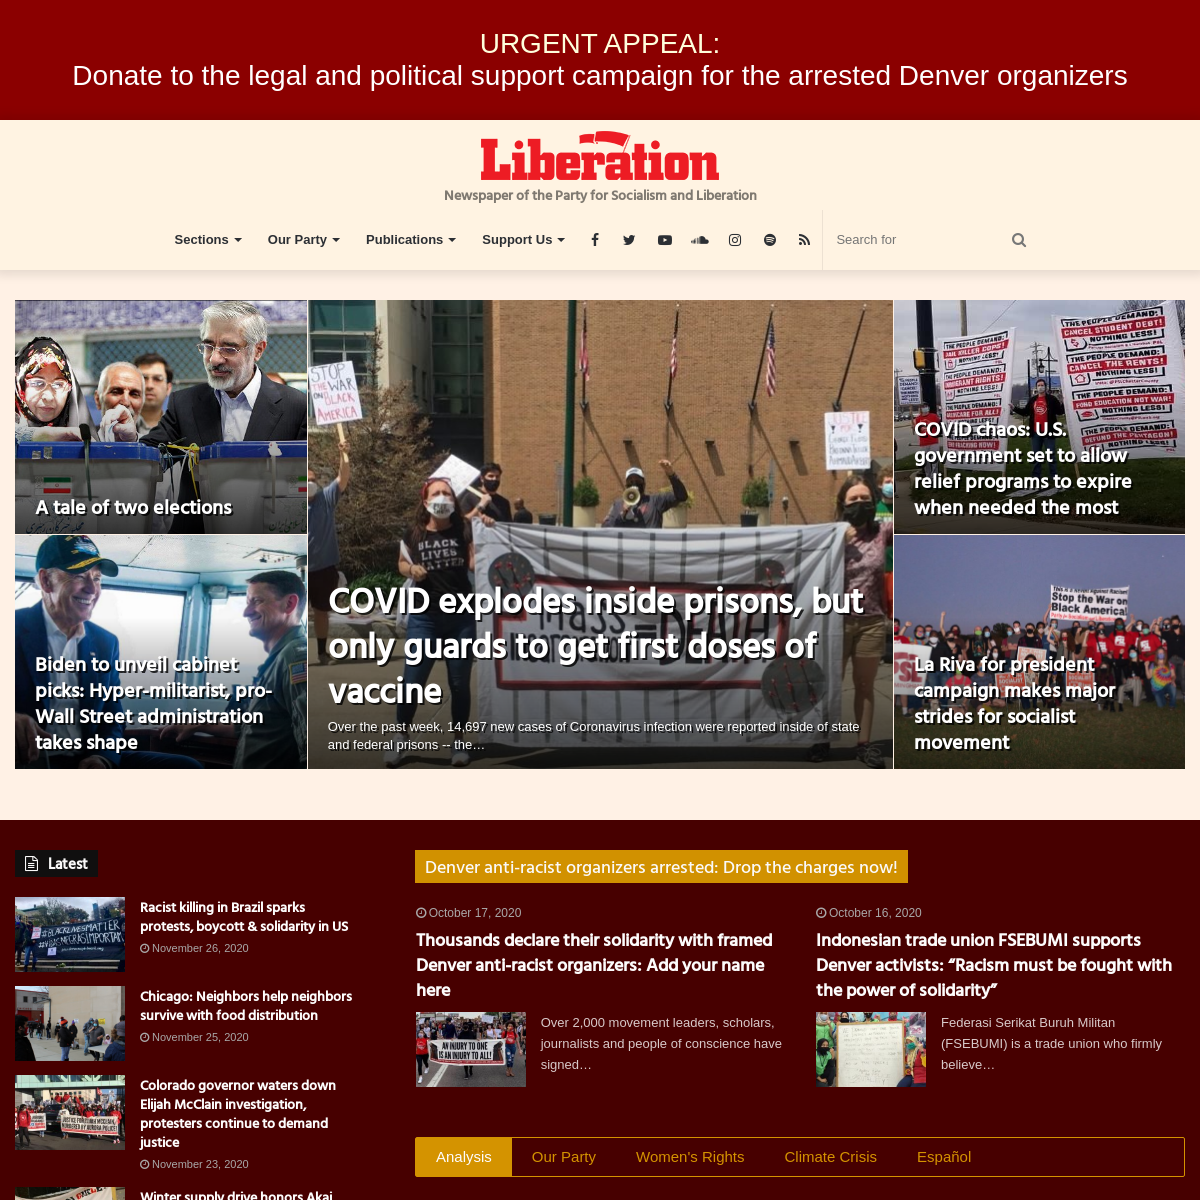 Liberation News – The Newspaper of the Party for Socialism and Liberation